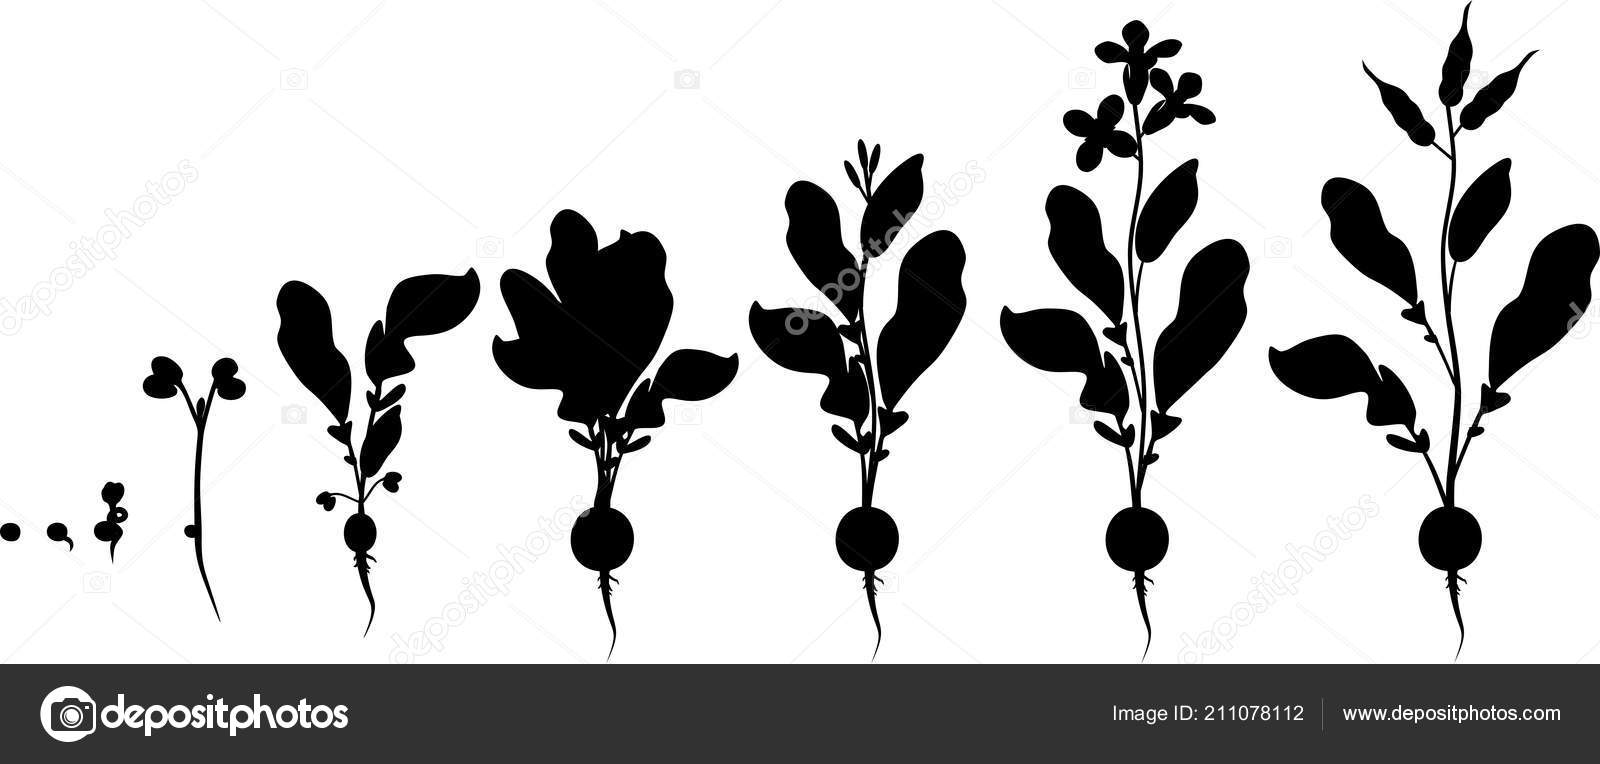 Radish Life Cycle Silhouettes Consecutive Stages Growth